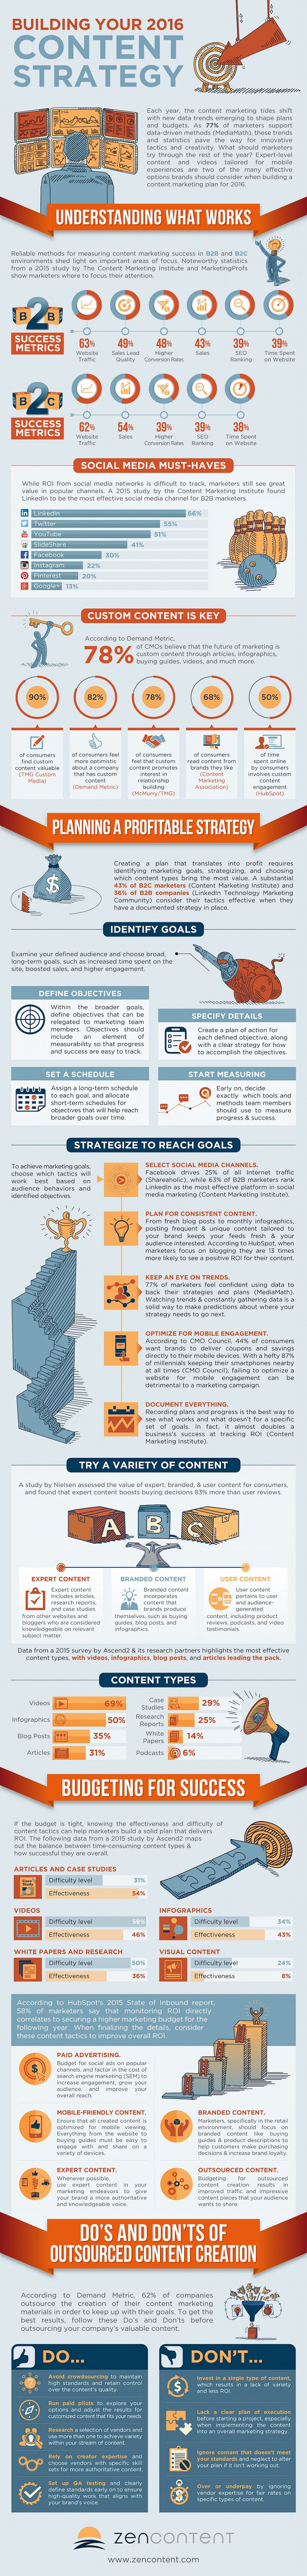 Developing a Content Marketing Strategy – infographic